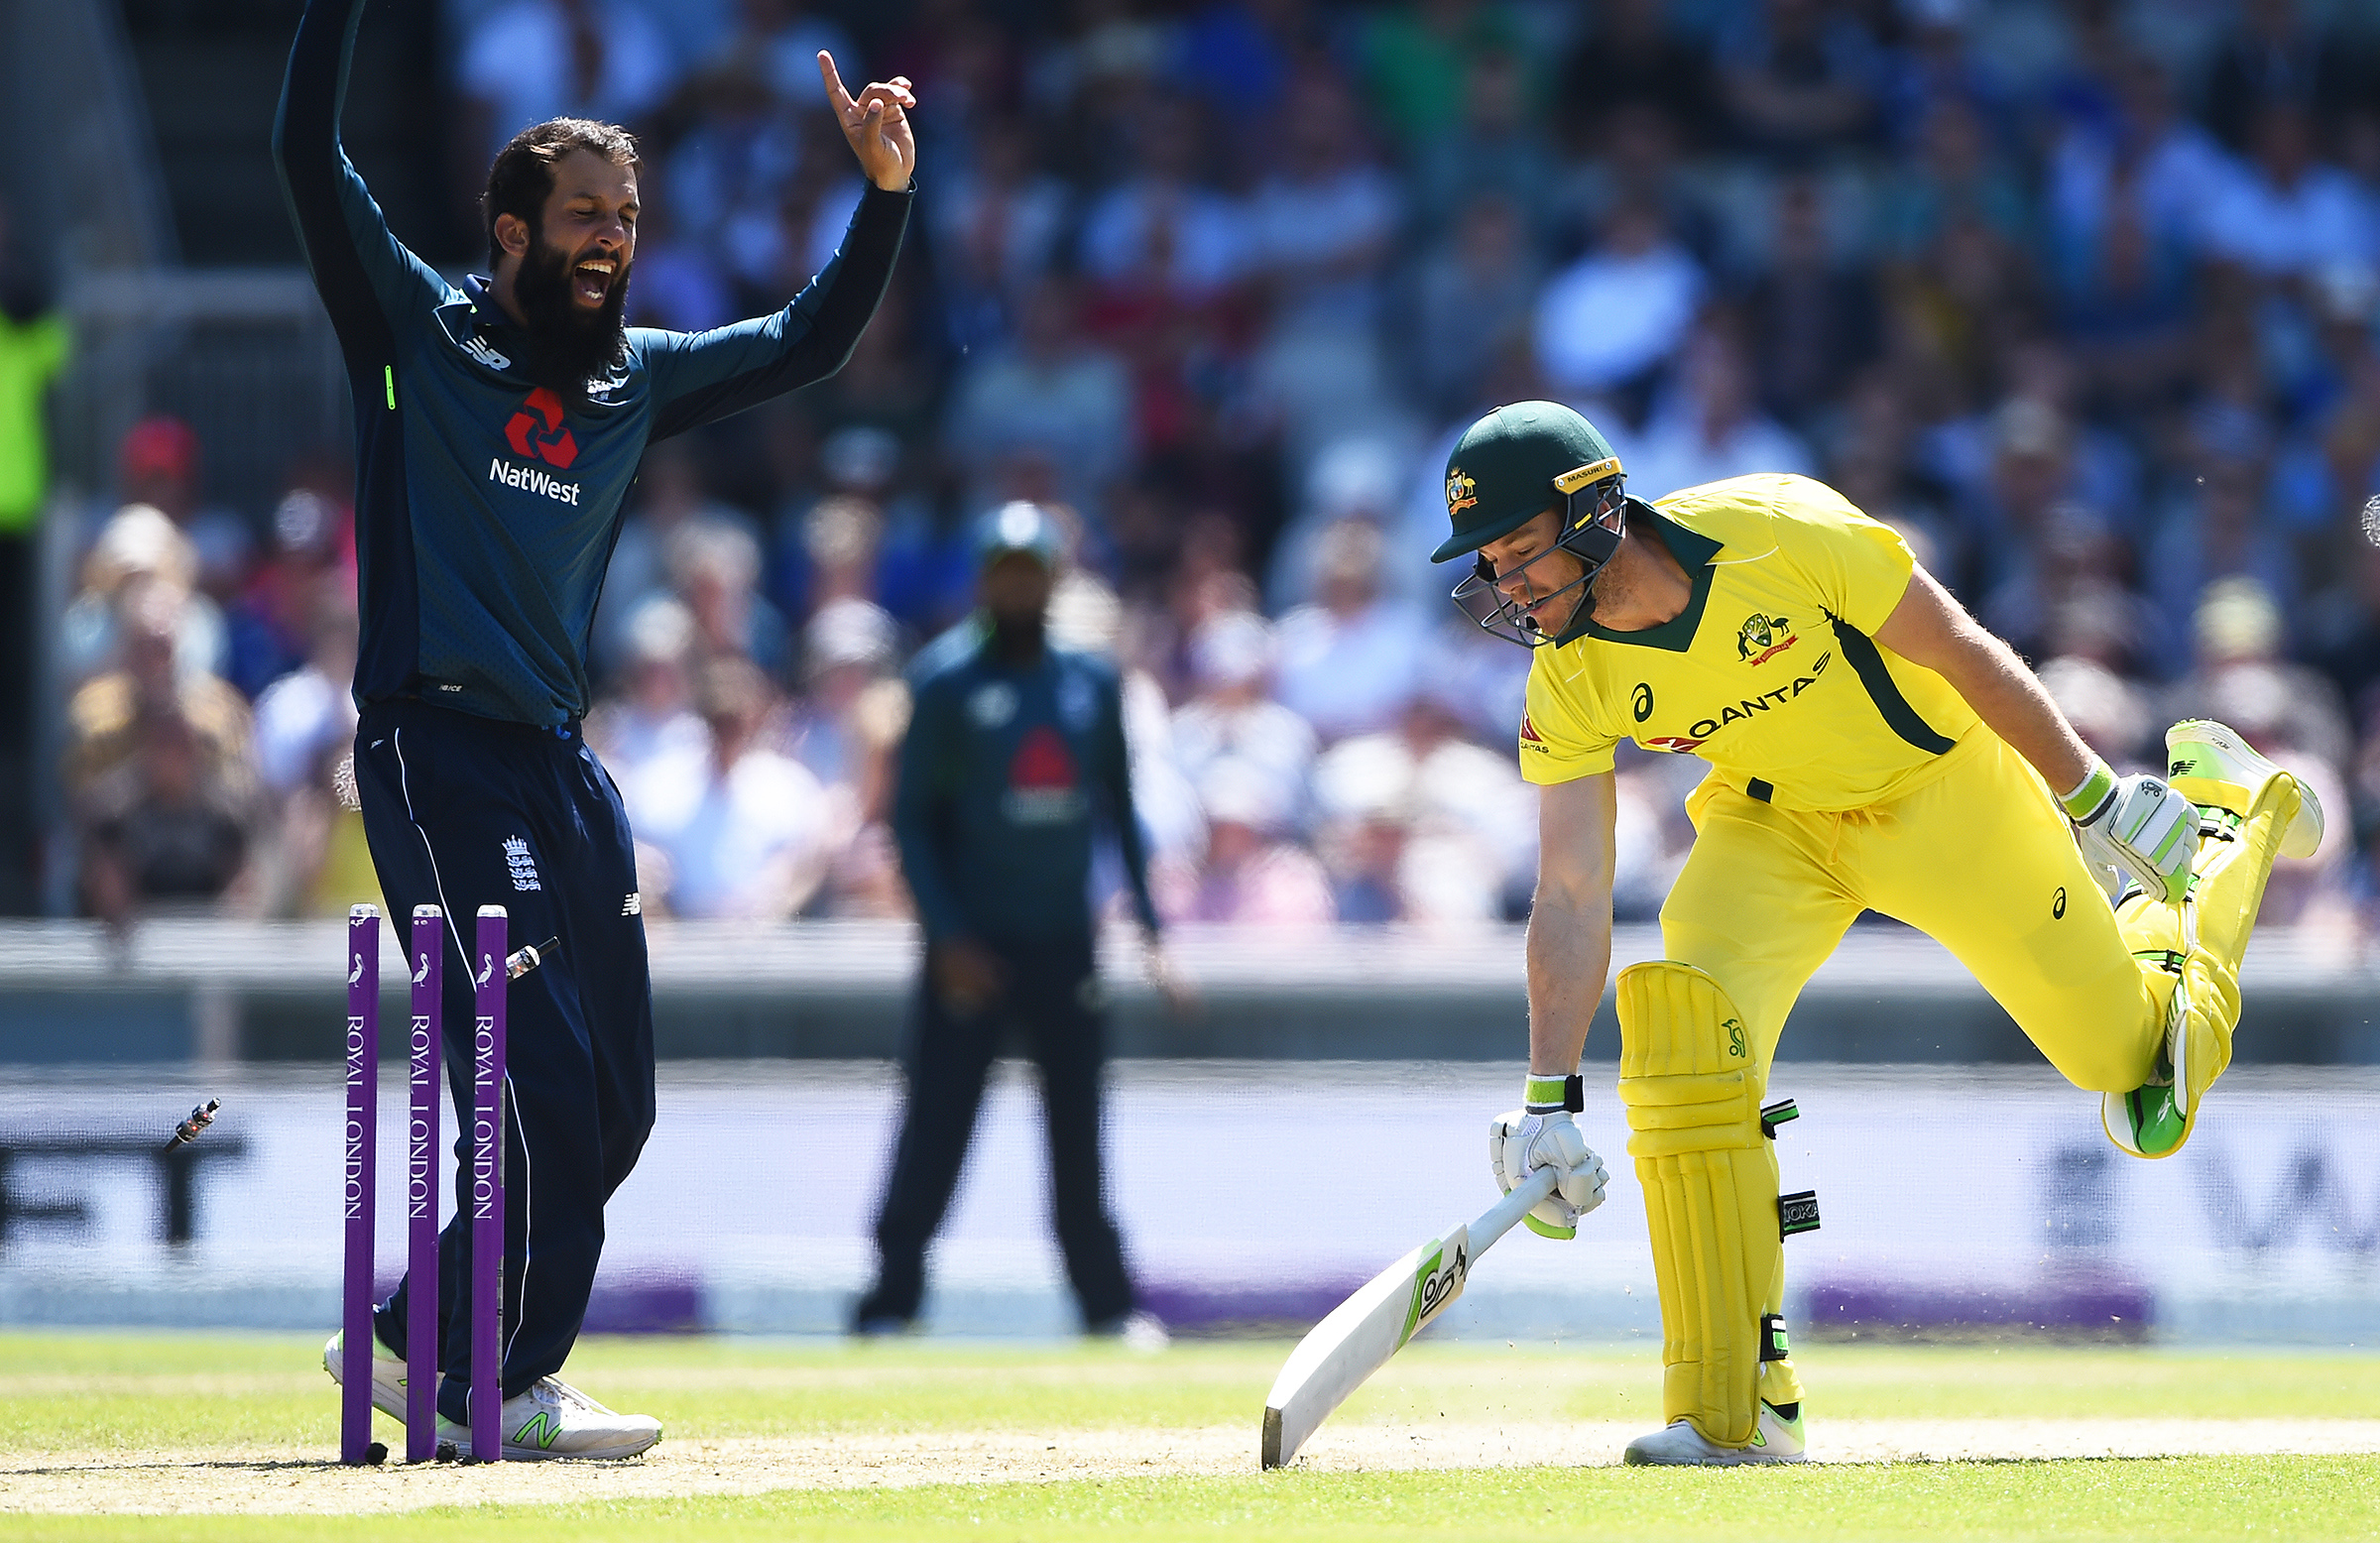 Paine was run out by Buttler for 1 // Getty